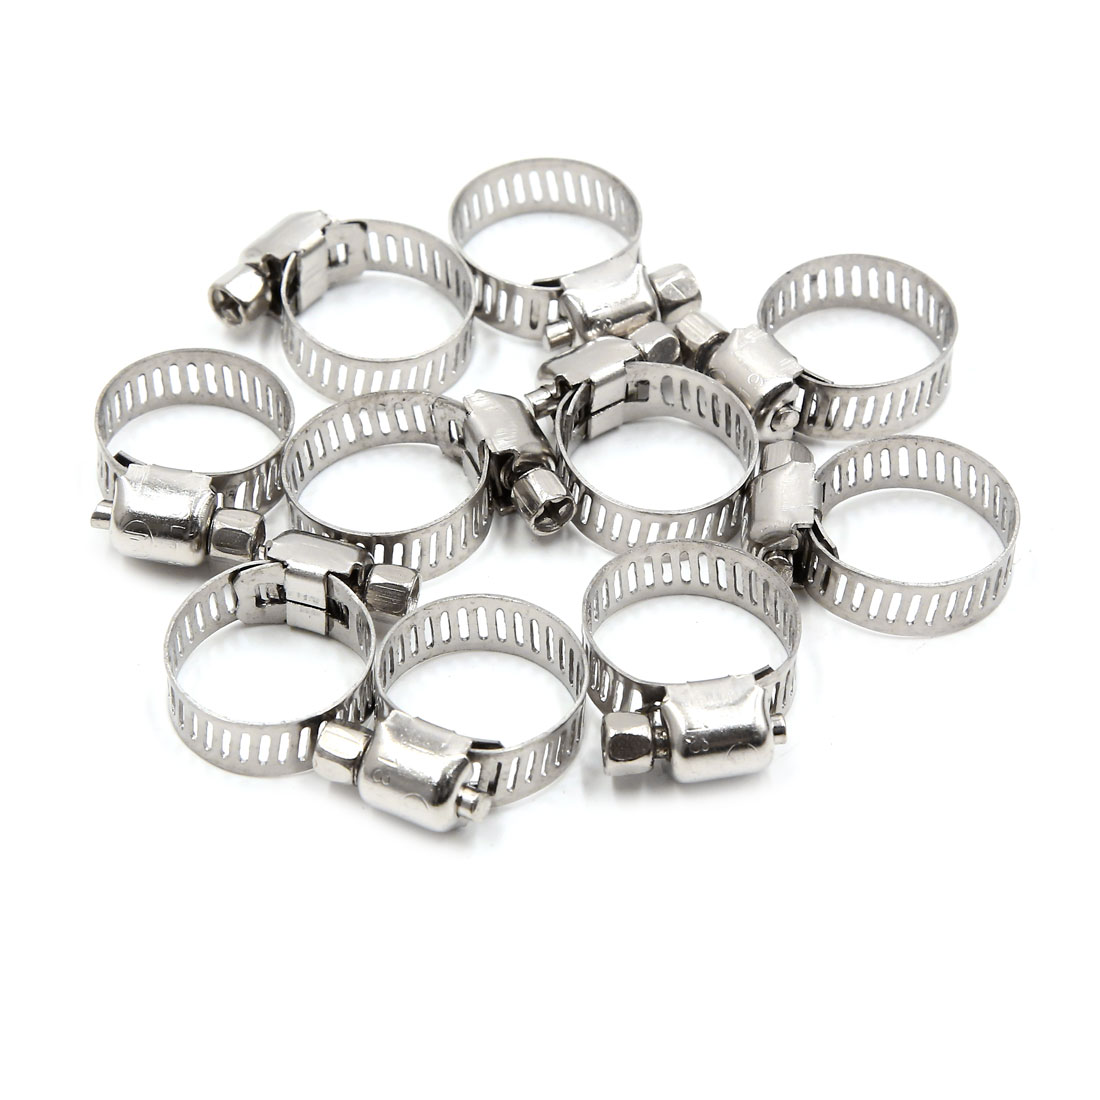 10pcs 13 19mm Stainless Steel Car Vehicle Drive Hose Clamp